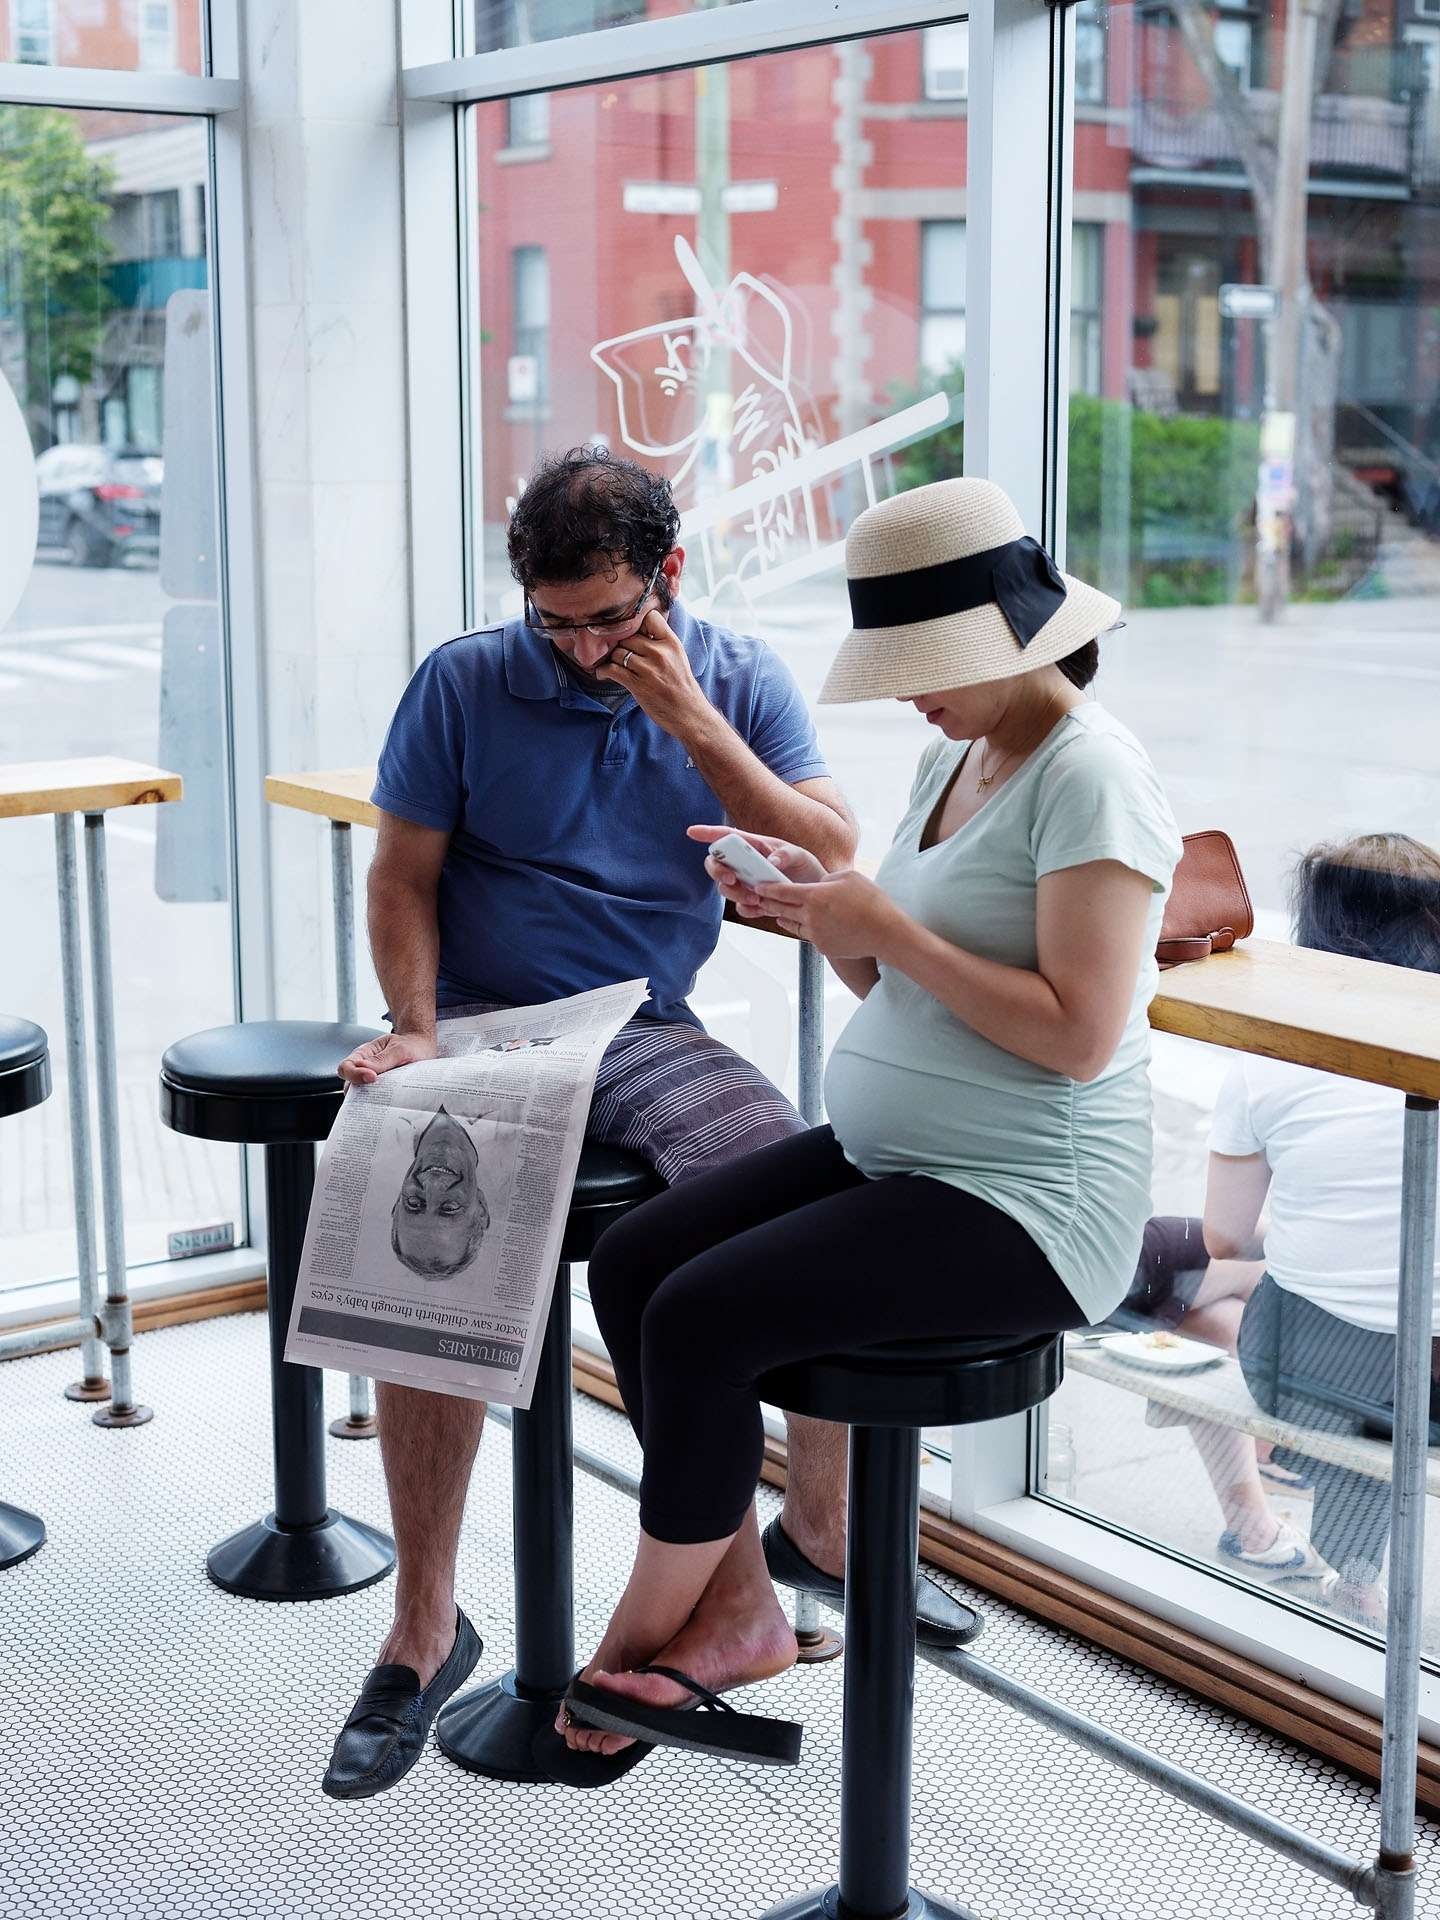 couple sitting on bar stools at cafe woman on her phone and man reading a newspaper photographed by Guillaume Simoneau as part of Off Duty Montreal series for The Wall Street Journal magazine